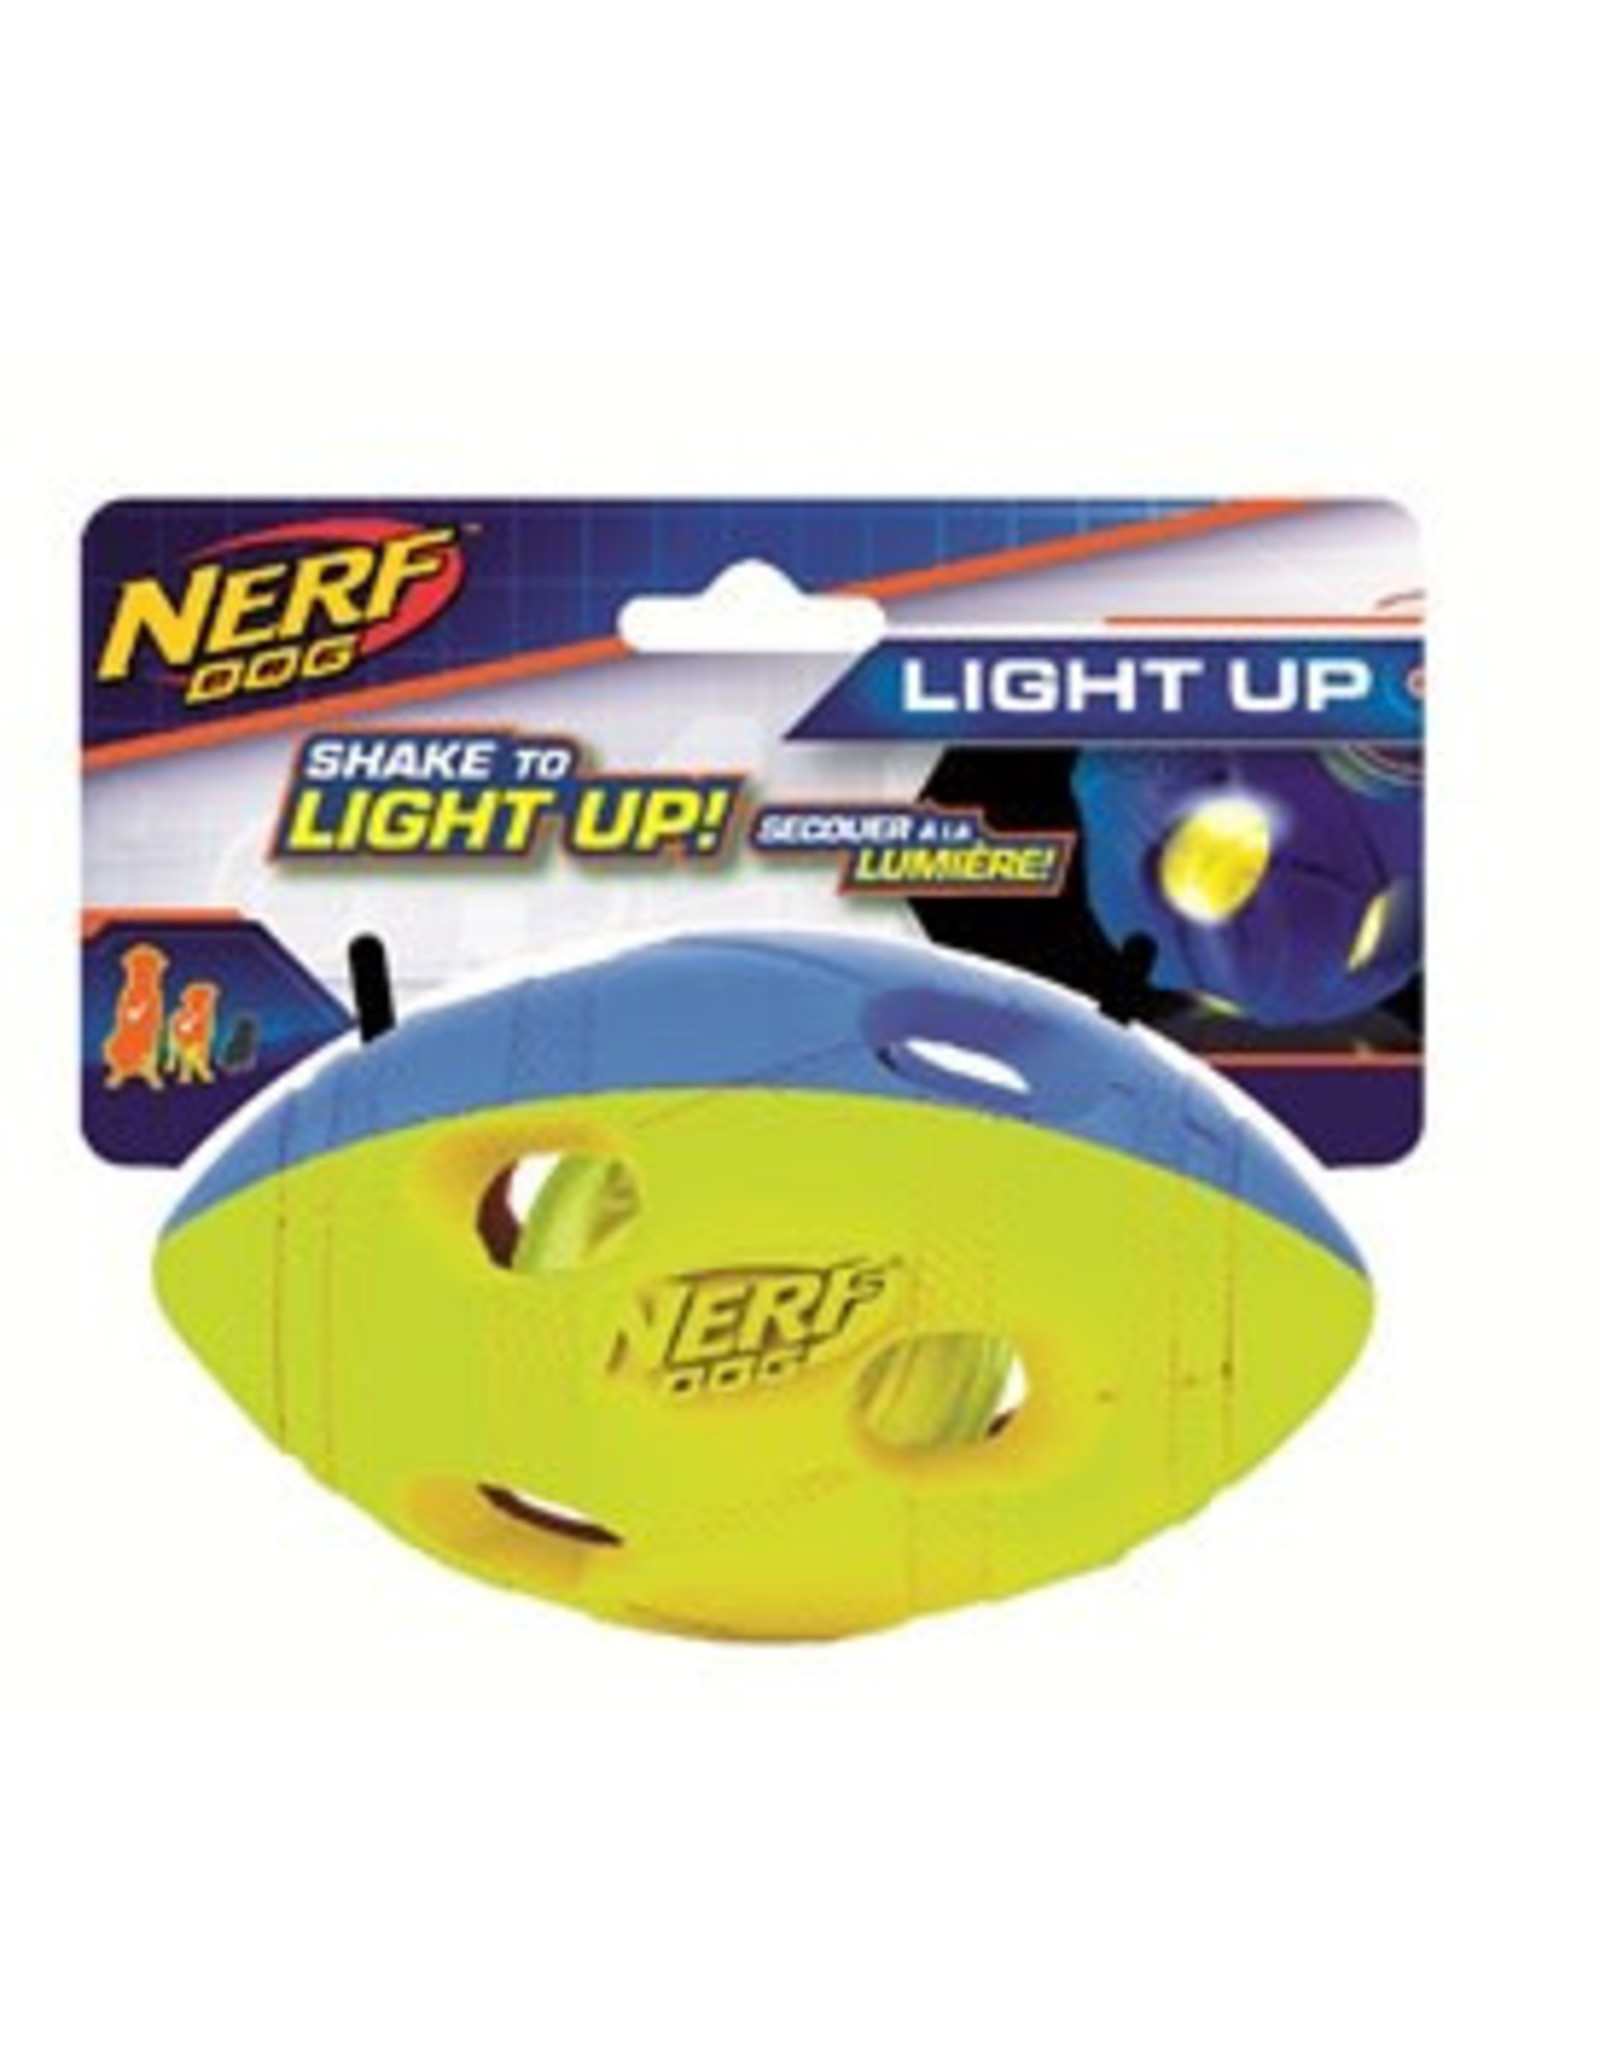 Nerf LED Bash Football Light Up Dog Toy, Medium